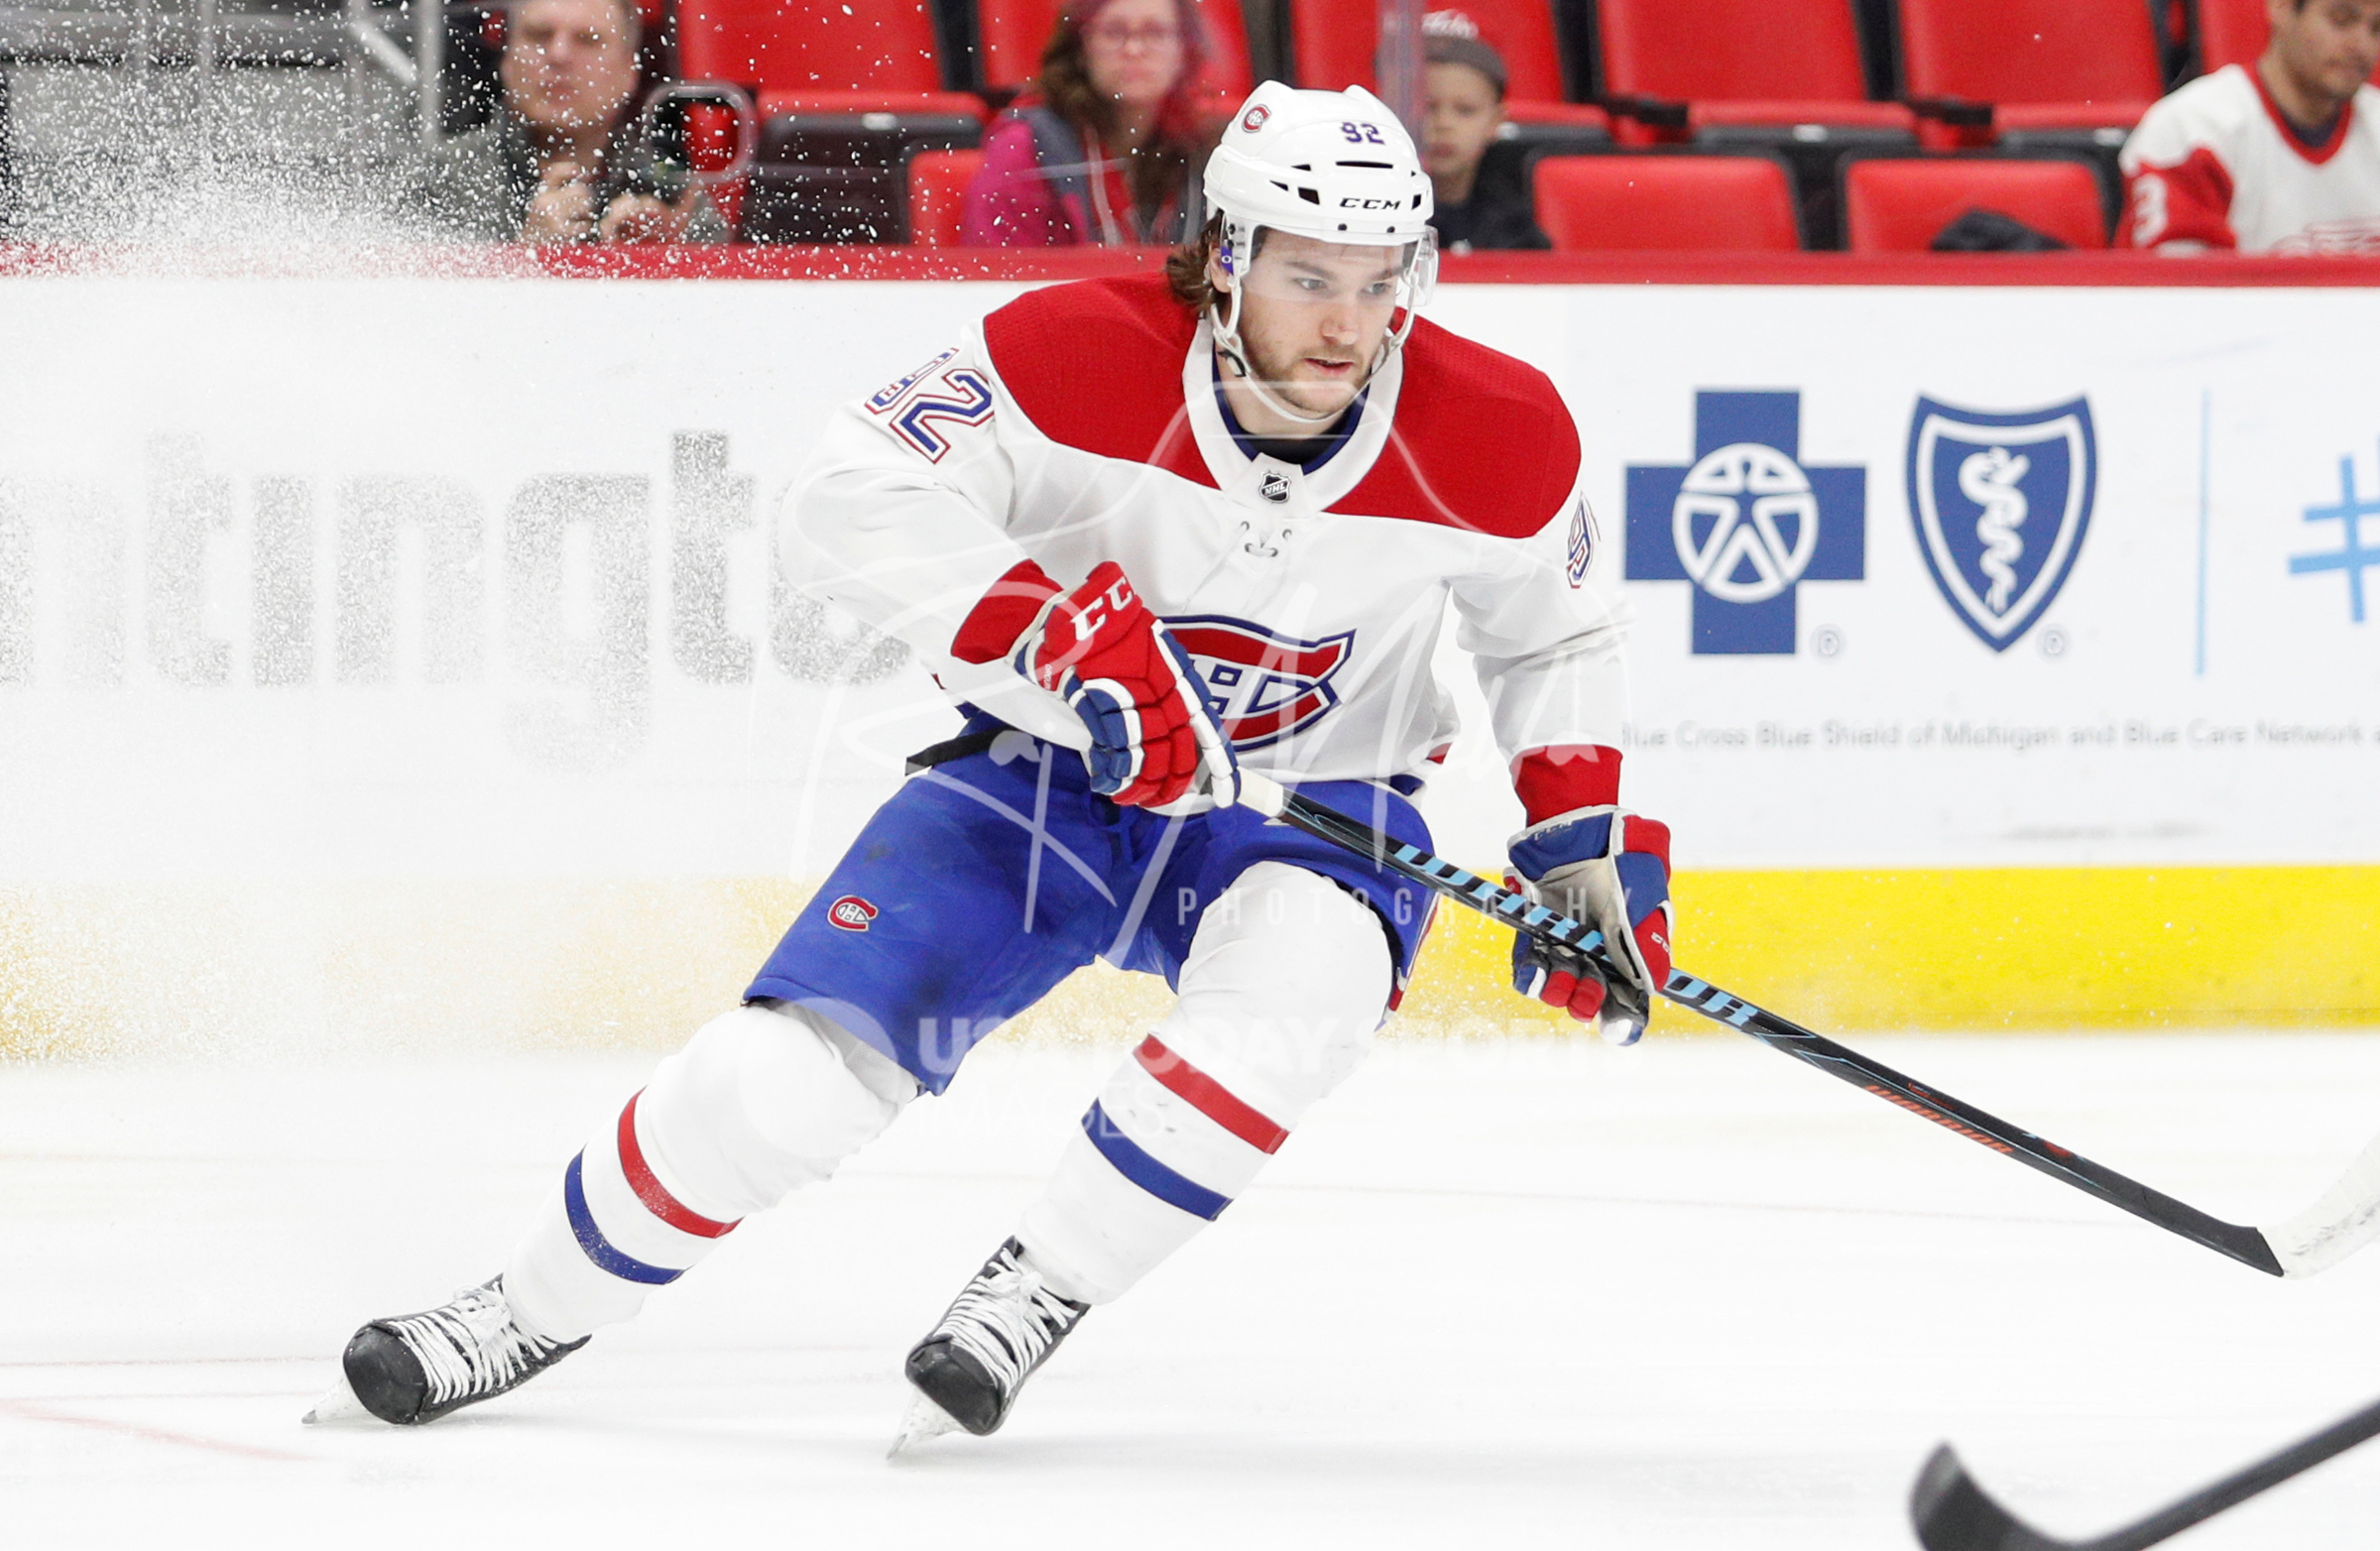 Apr 5, 2018; Detroit, MI, USA; Montreal Canadiens center Jonathan Drouin (92) skates on the ice during the first period against the Detroit Red Wings at Little Caesars Arena. Mandatory Credit: Raj Mehta-USA TODAY Sports